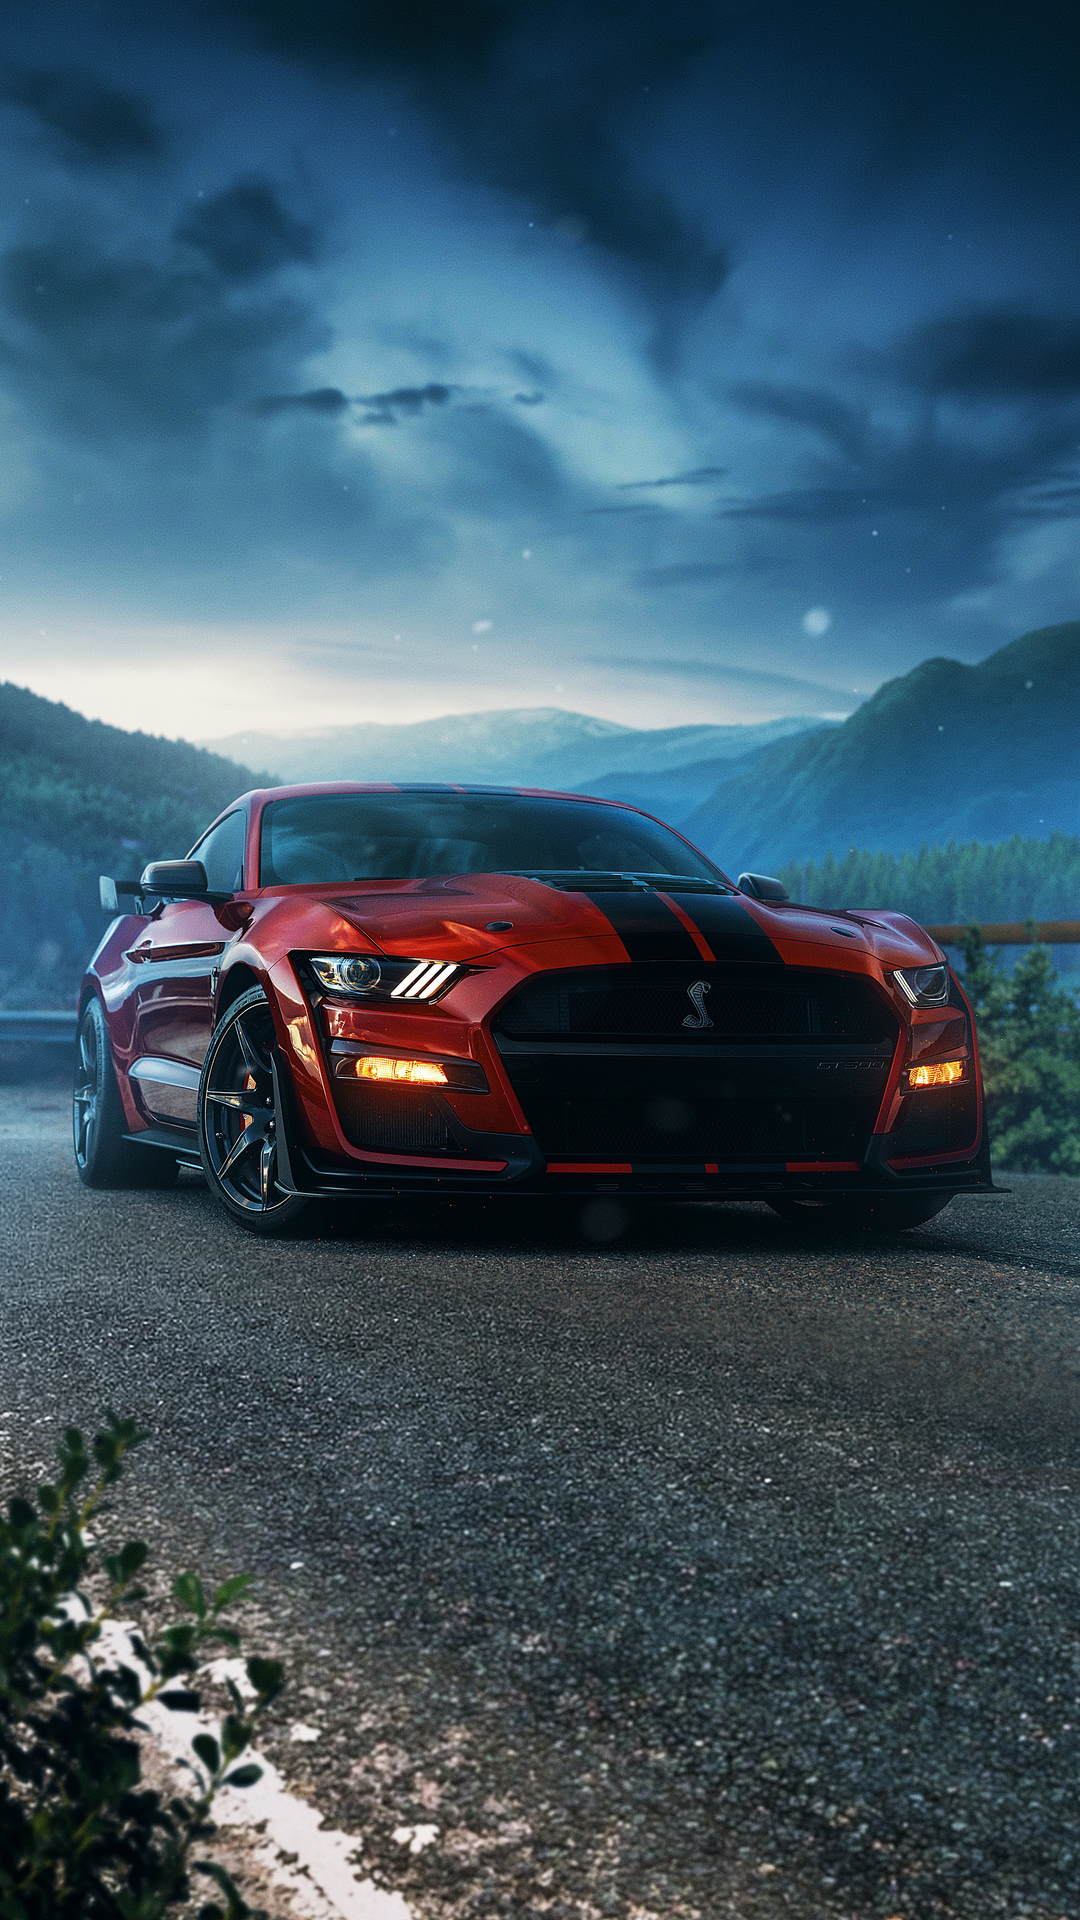 A quality selection of high resolution wallpapers featuring the most desirable cars in the world. Wallpaper Ford Mustang Gt Muscle Car 4k